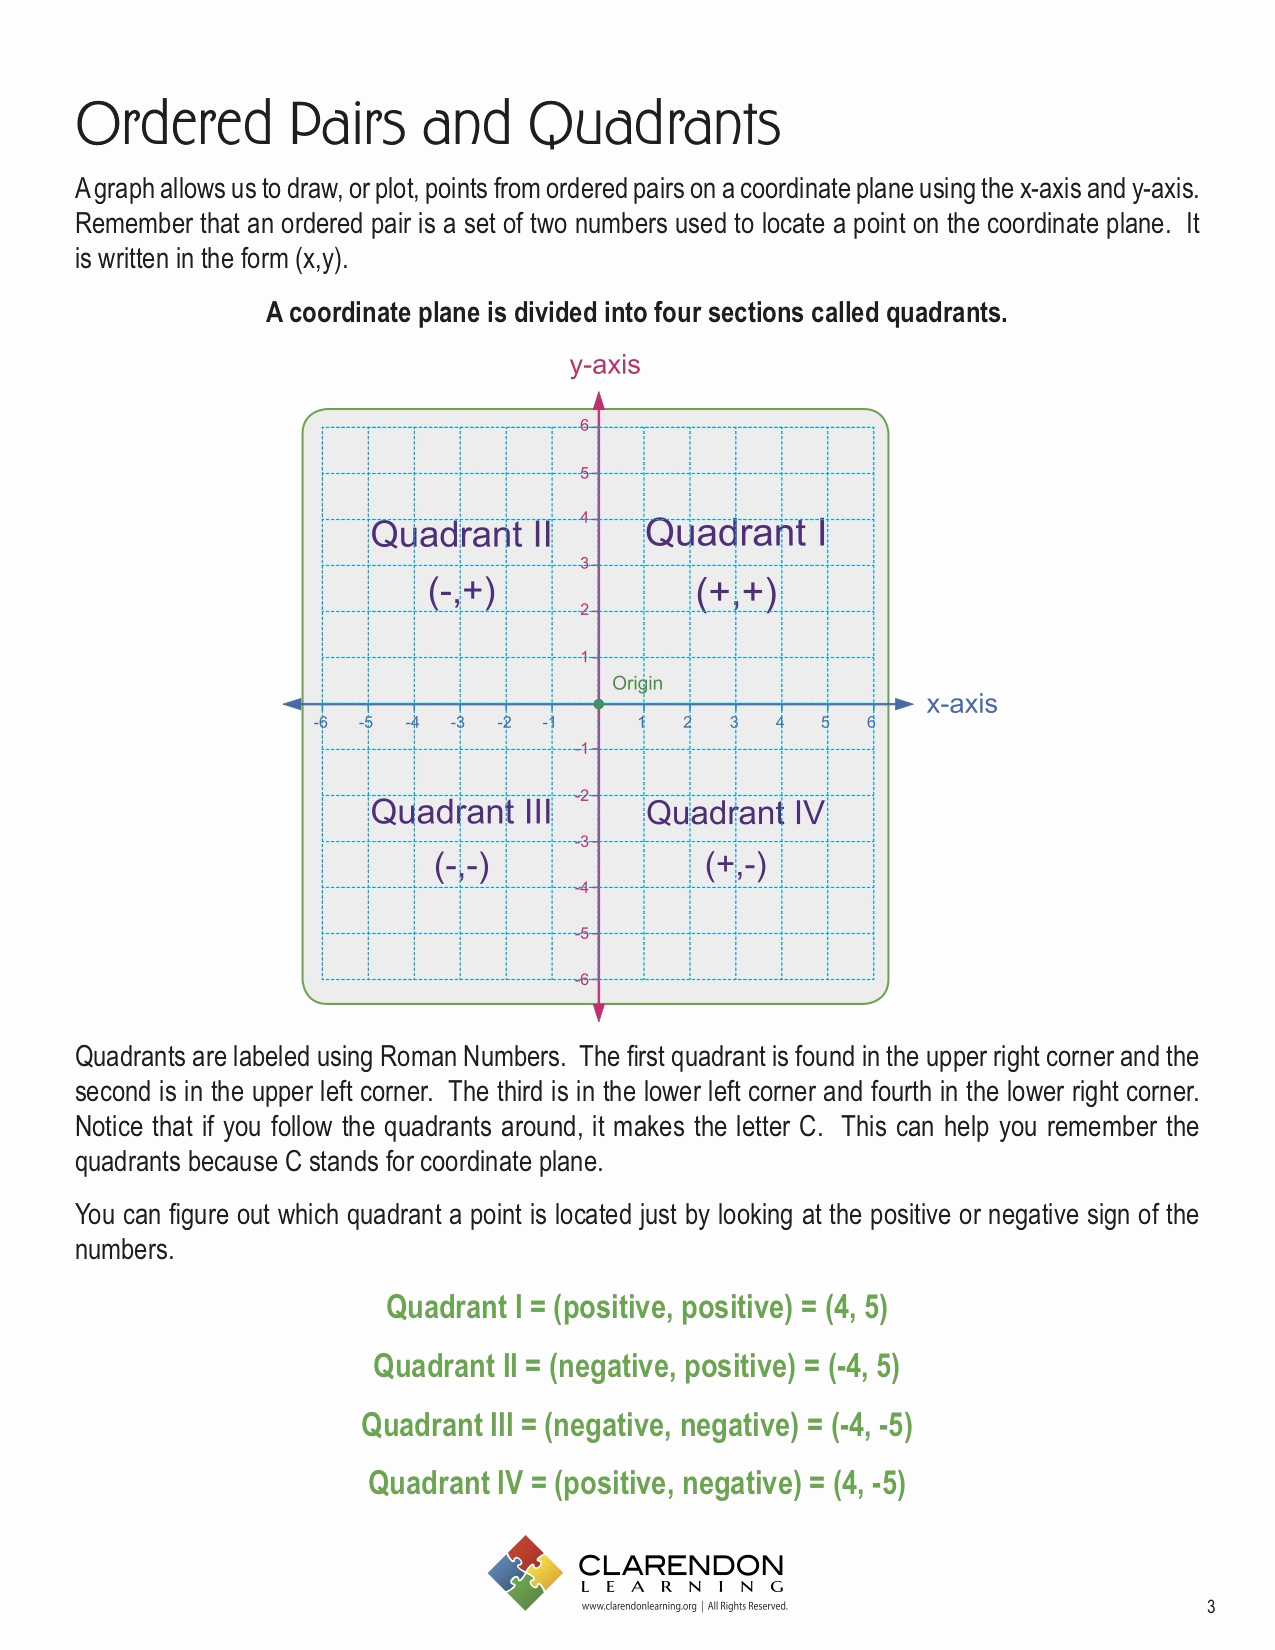 Ordered Pairs Worksheets Unique ordered Pairs and Quadrants Lesson Plan